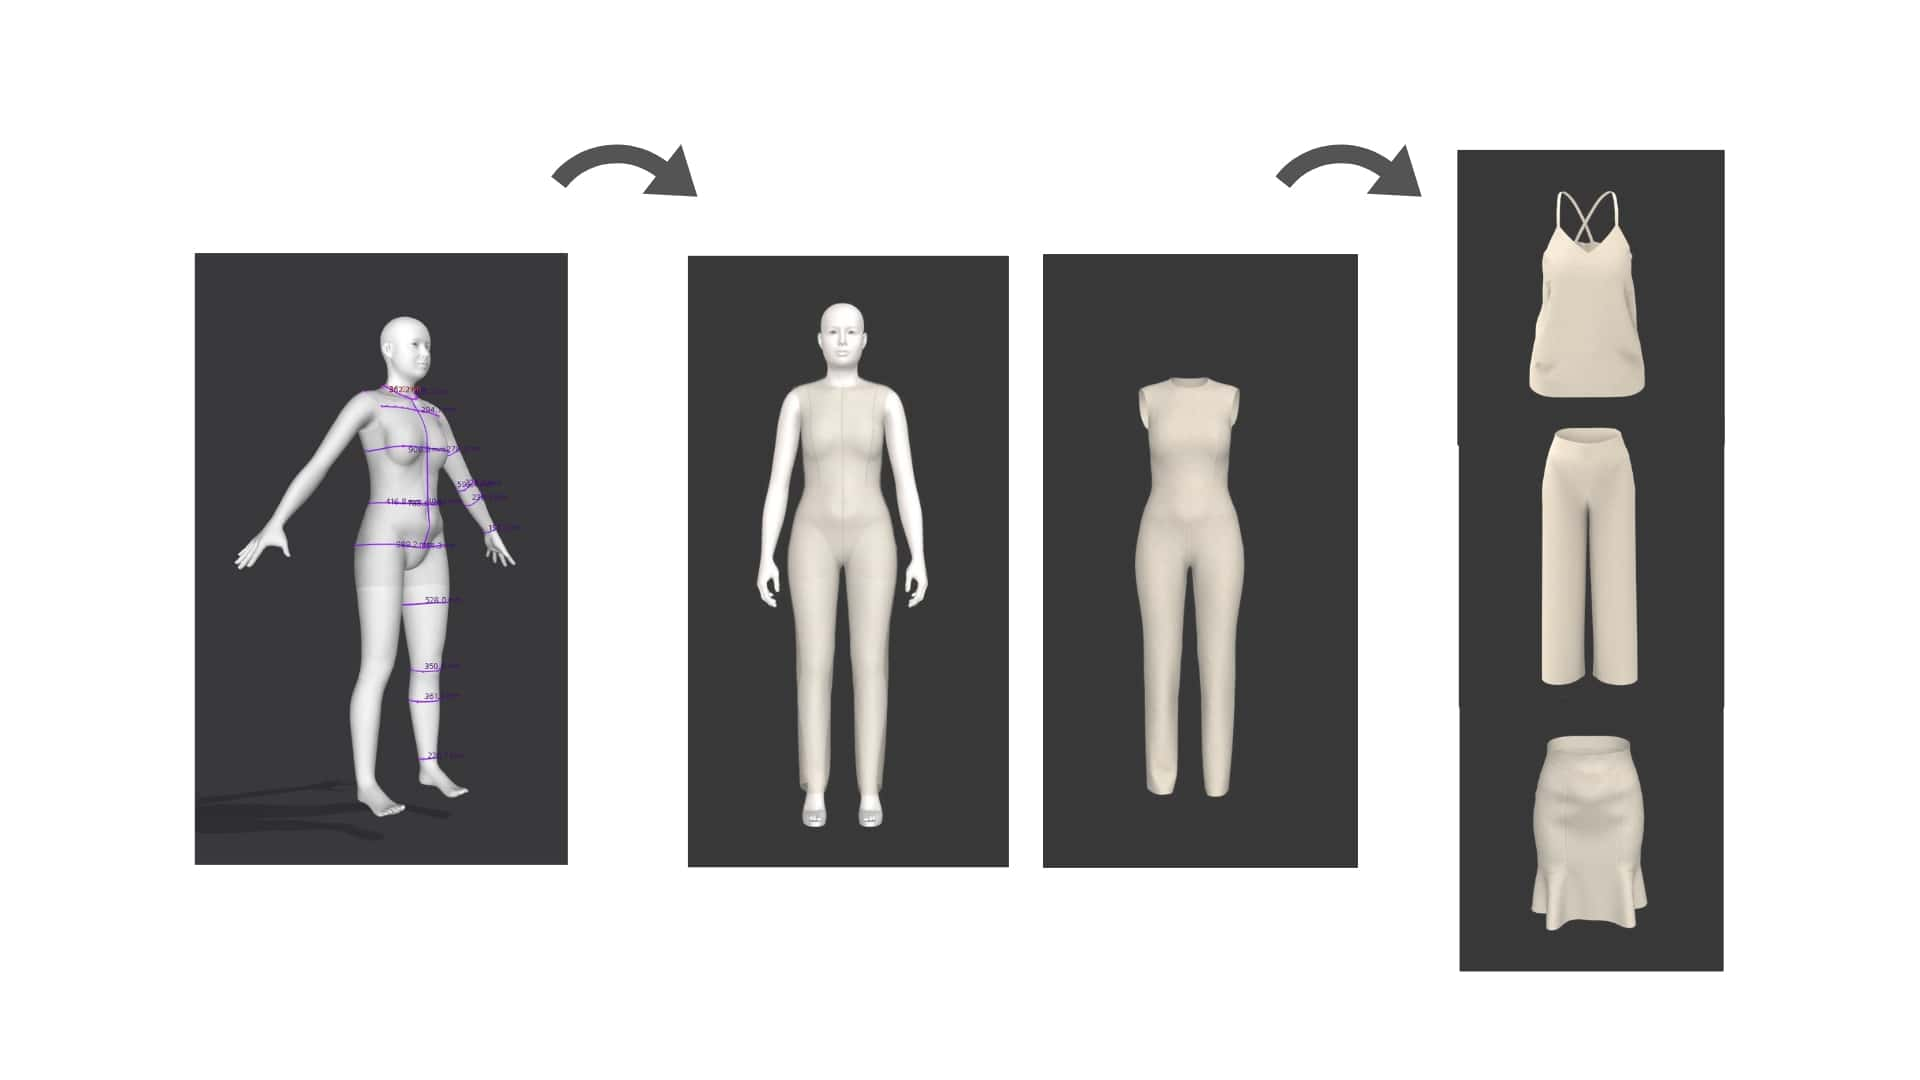 Week 1: What is digital couture - Introduction and terminologyParametric approach to garment designGrading from body measurementsWhat parametric design can and cannot doApplications beyond fashionWorkshop: Working with interactive custom basic blocks and grading from body measurements